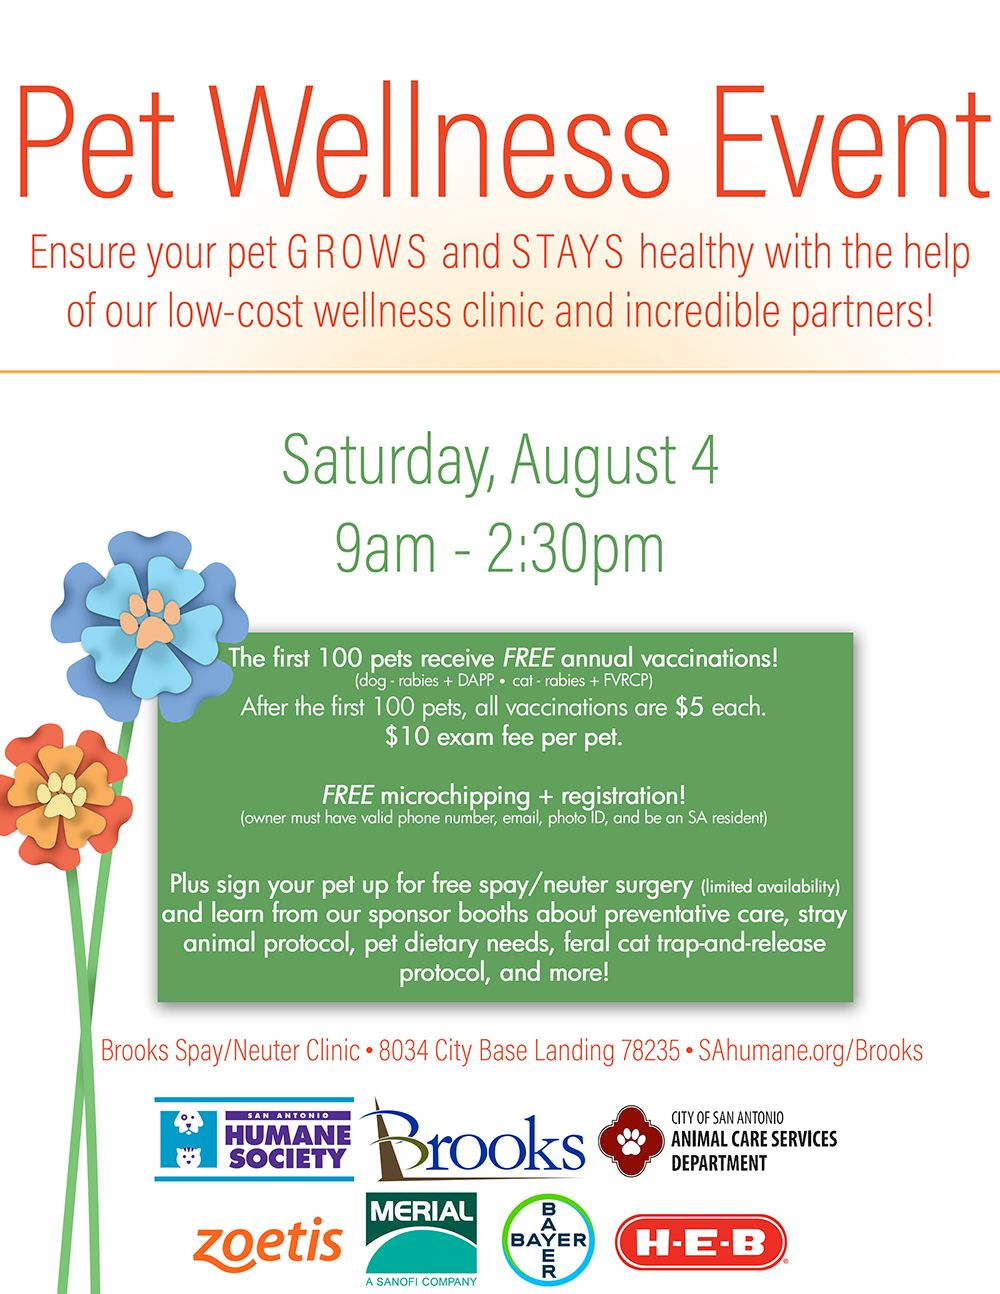 Come visit us at our Brooks Spay/Neuter Clinic this